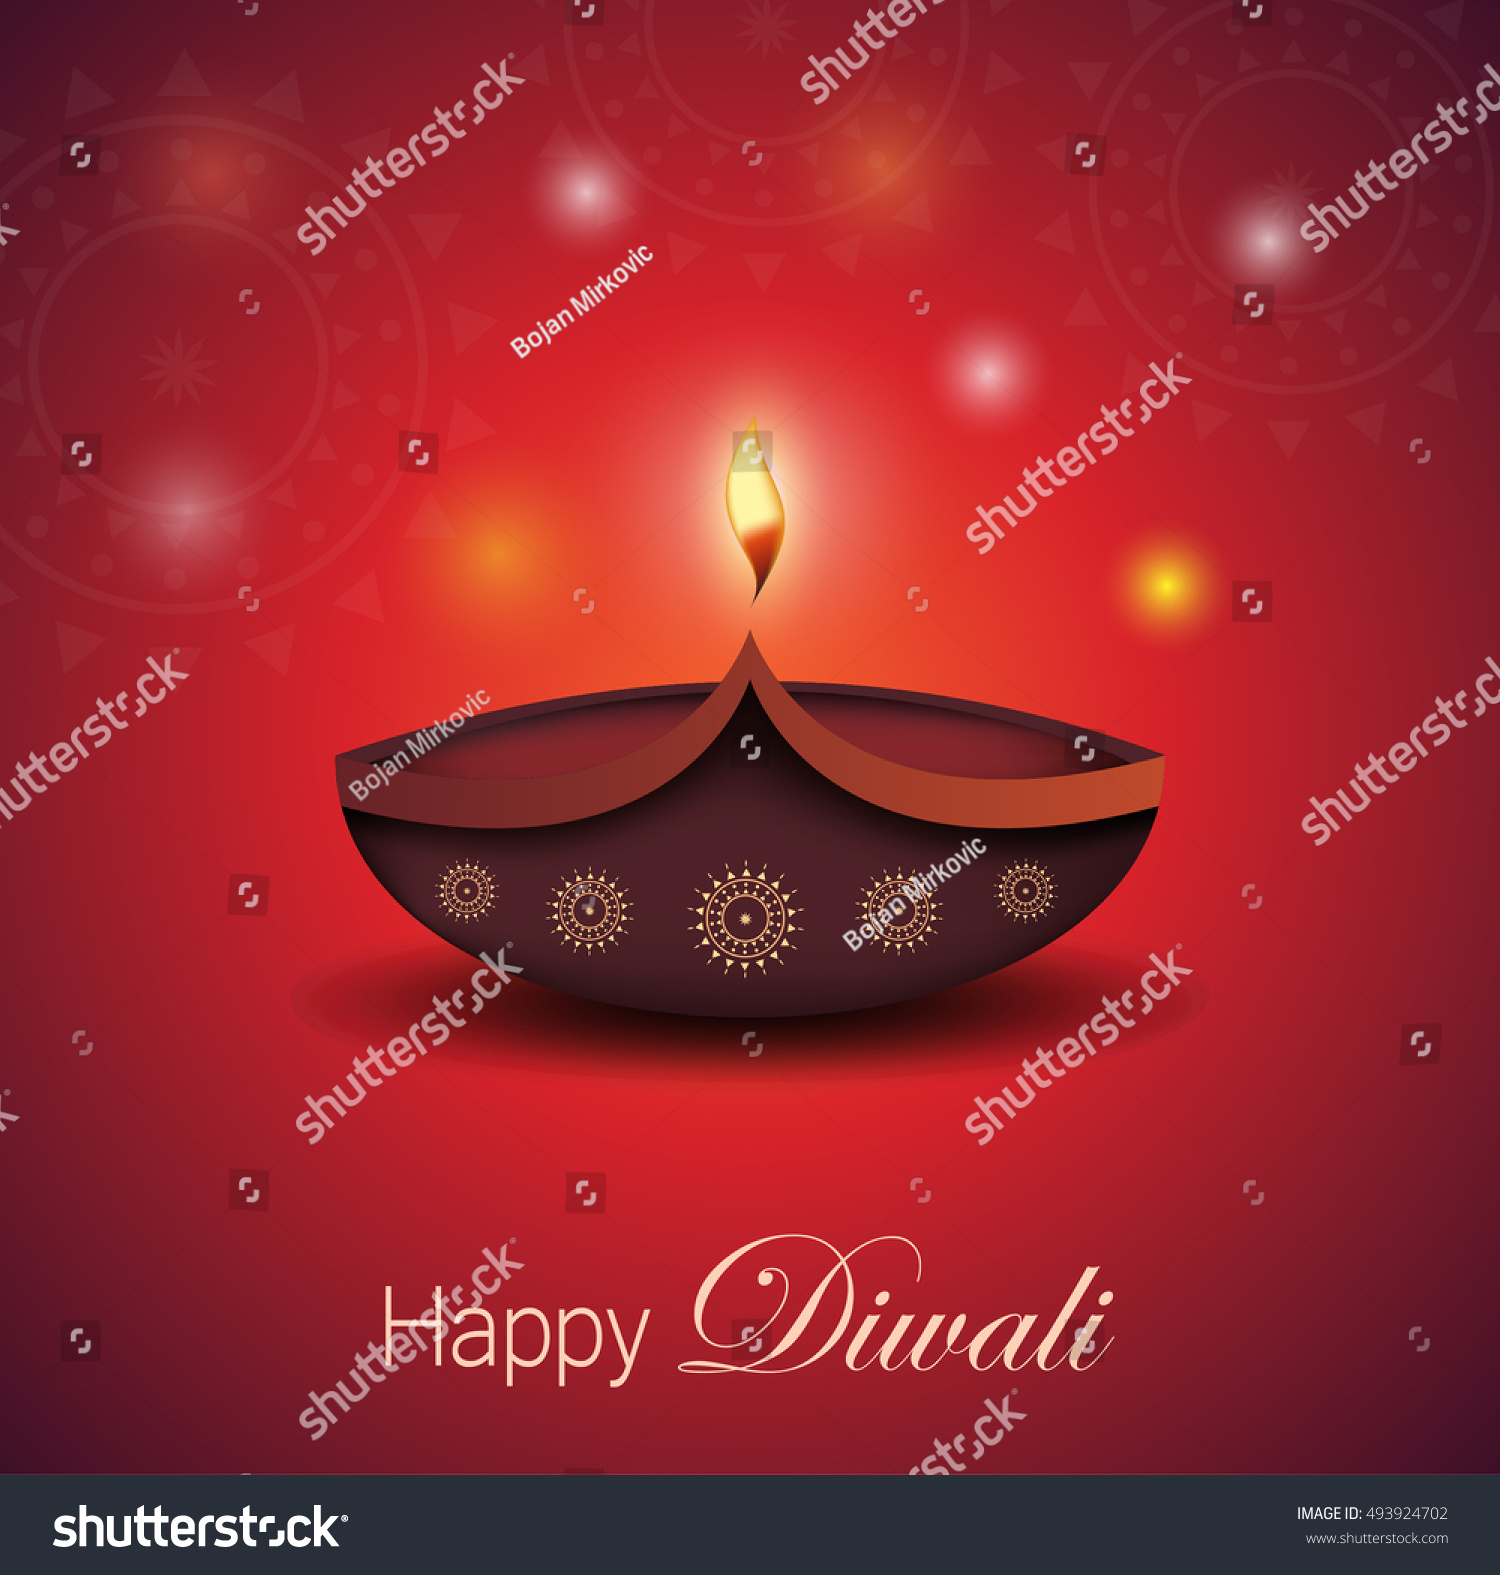 Diwali Greeting Card Burning Diya Festival Stock Vector Royalty